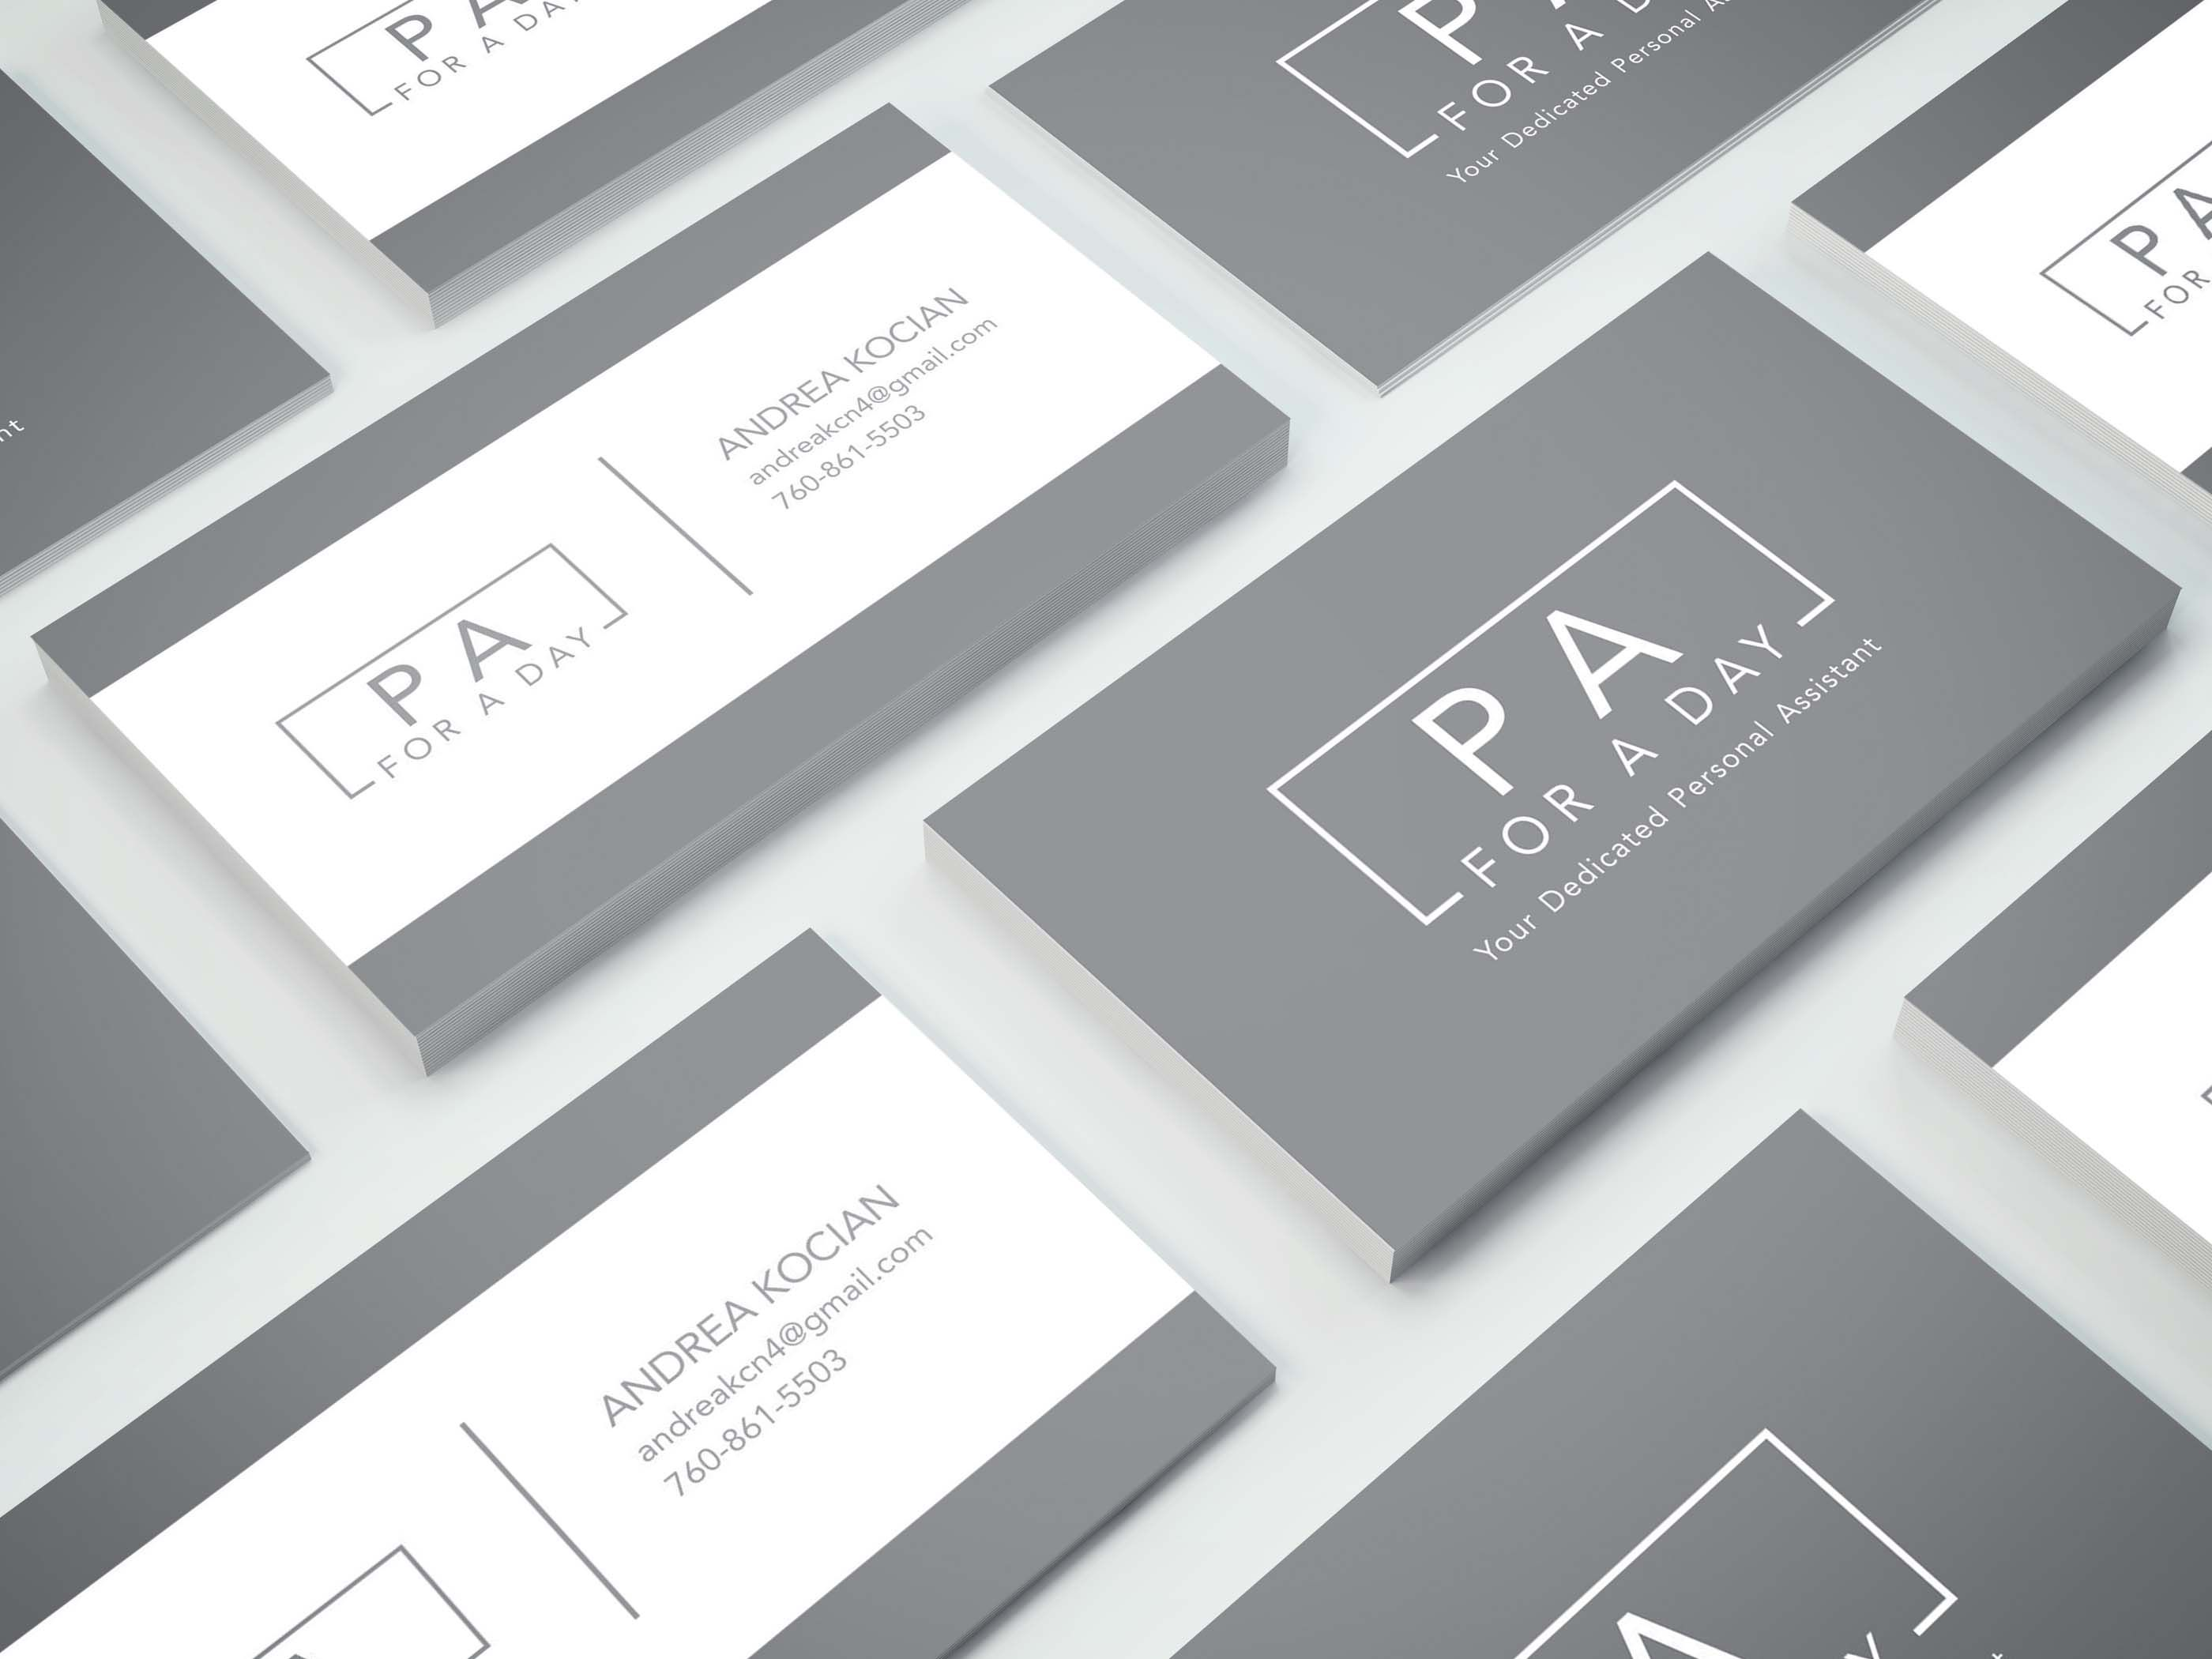 Shahzadabutt I Will Design Professional Double Sided Business Card For 10 On Fiverr Com Business Card Design Double Sided Business Cards Professional Business Card Design